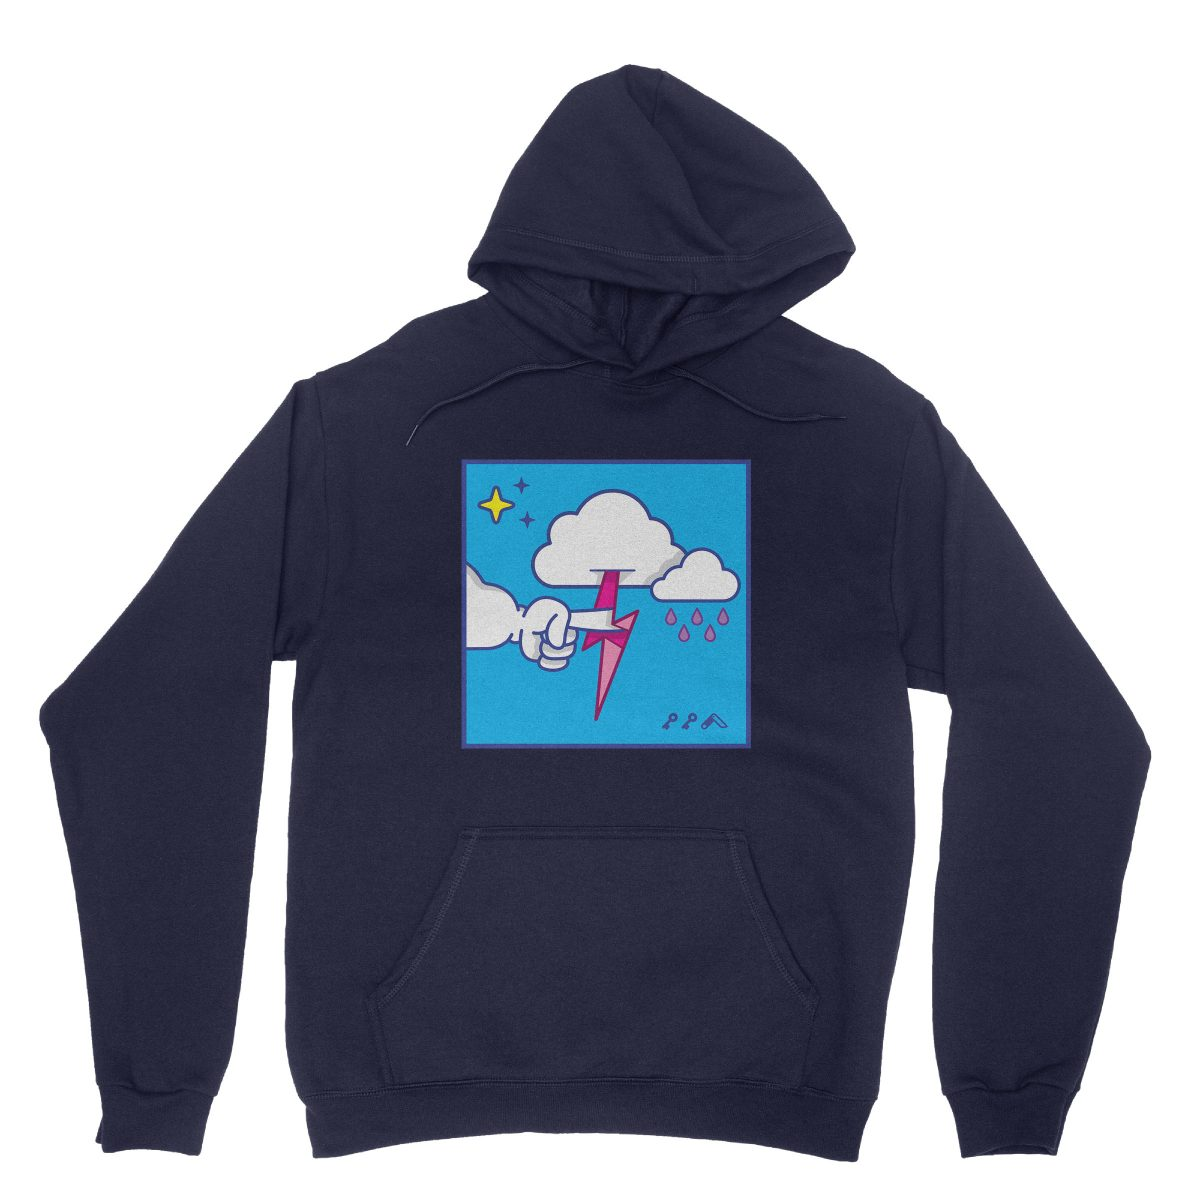 """""""MUTUAL CLOUDSENT"""" funny adult cartoon animation style hoodies in navy at kikicutt.com"""